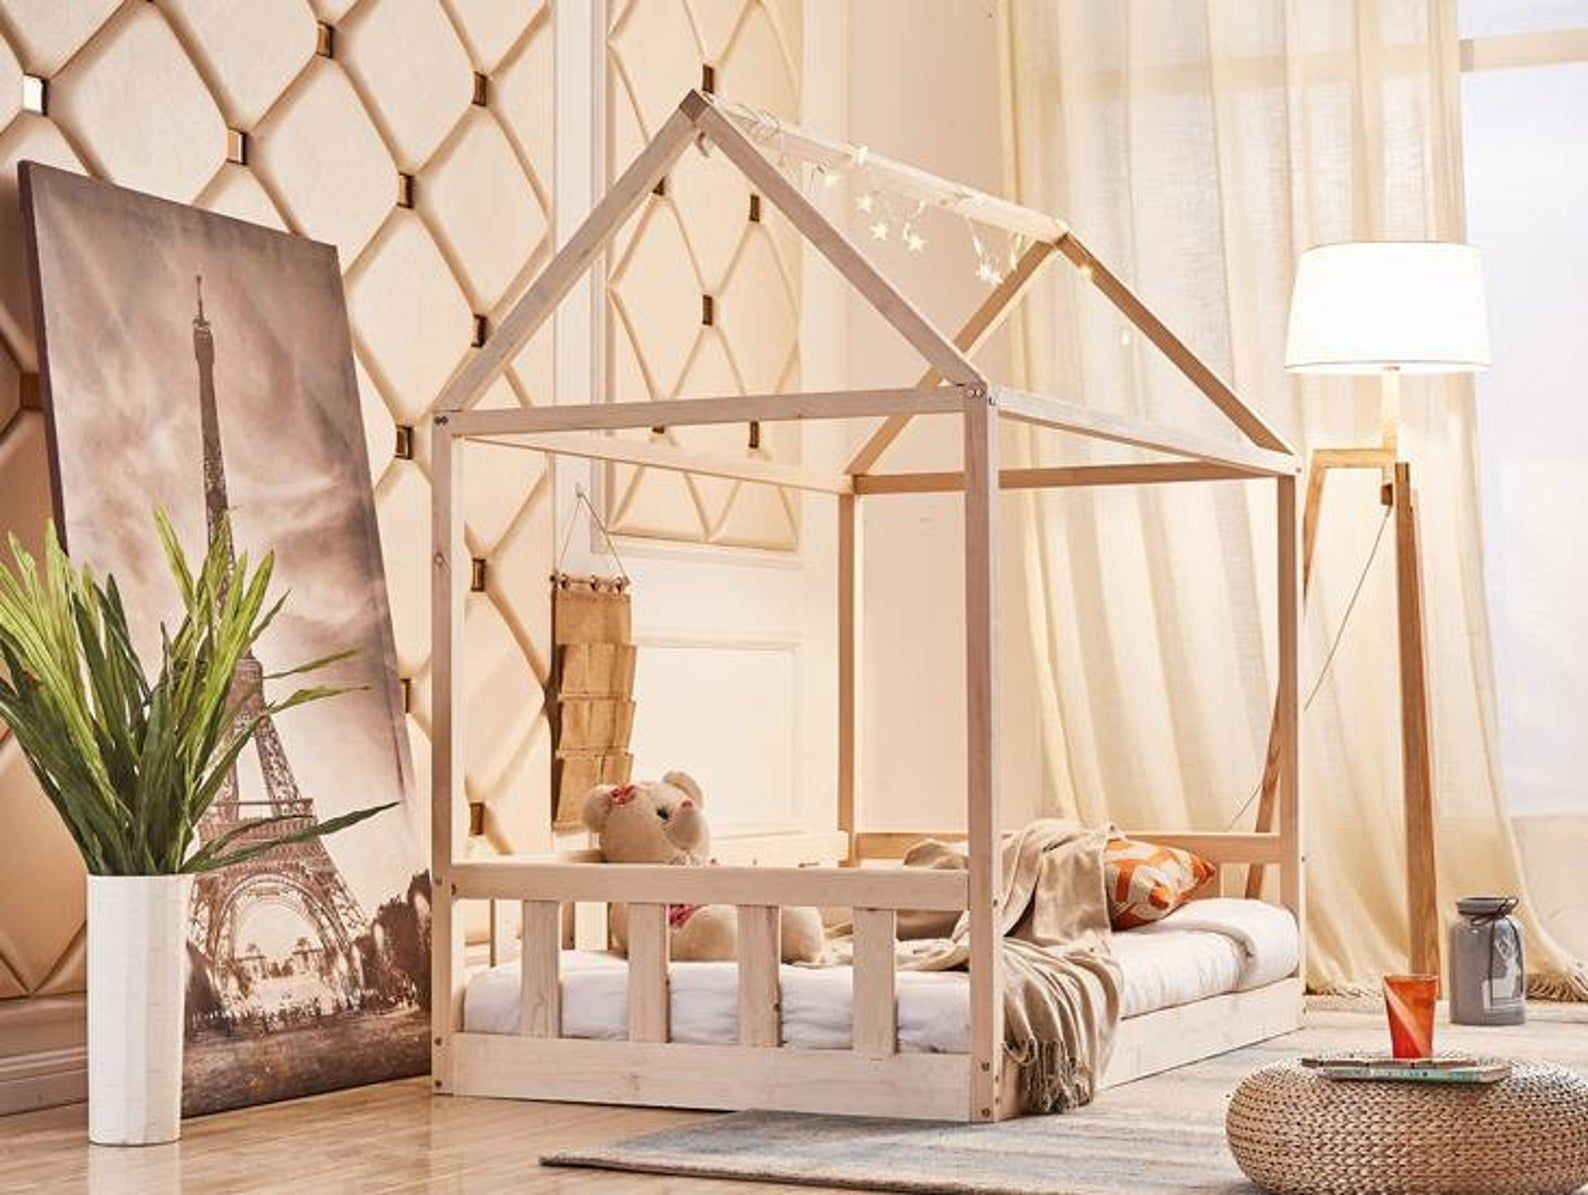 9 Farb Haus Bett Mit Sicherheitsbarrieren Montessori Bett Toddler Bett Hausbett Lit Montessori Lit Enfant Kinderbett Hausbett In 2020 House Beds Kid Beds Montessori Bed